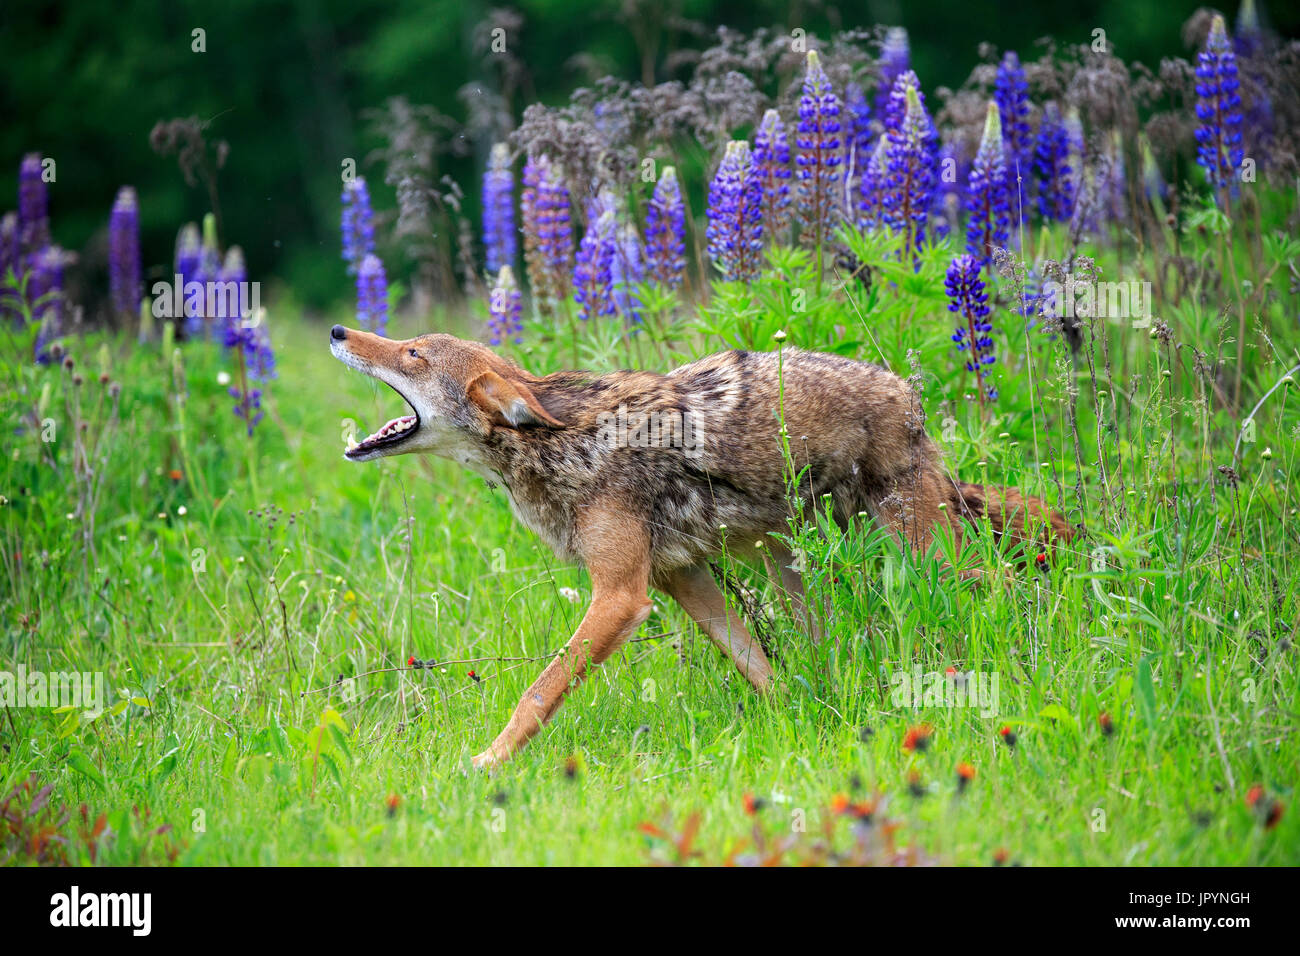 Coyote walking in the grass - Minnesota USA - Stock Image